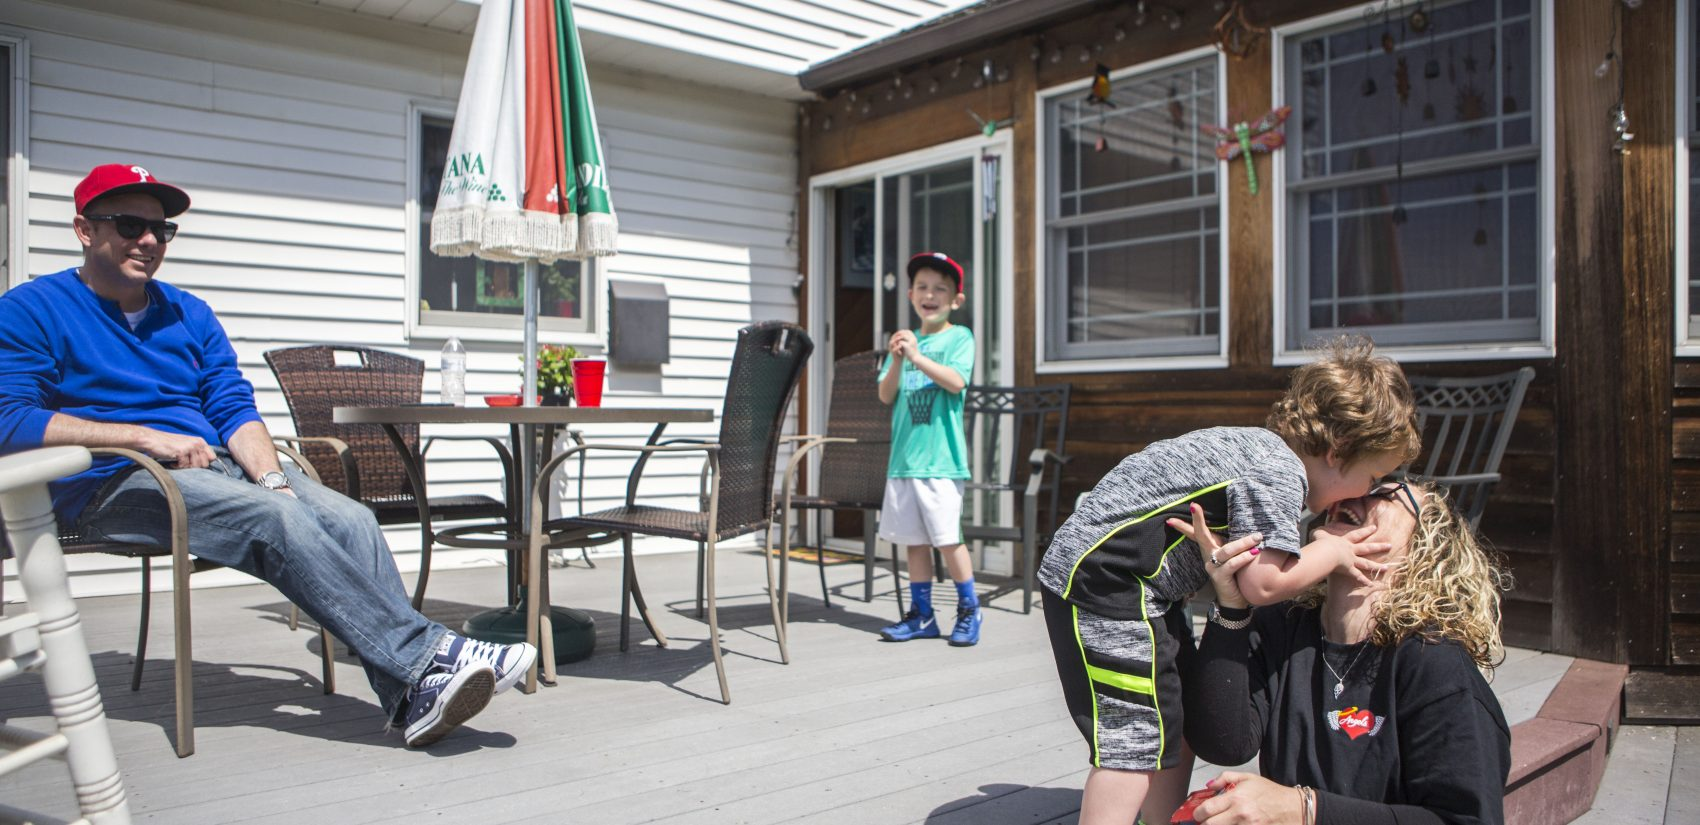 Nicole O'Donnell (right) spends a Sunday at her parent's home in Delaware County, Pennsylvania with her son Joey, her fiancéŽ Bill Meighan, and his son Ryan. (Jessica Kourkounis/For Keystone Crossroads)